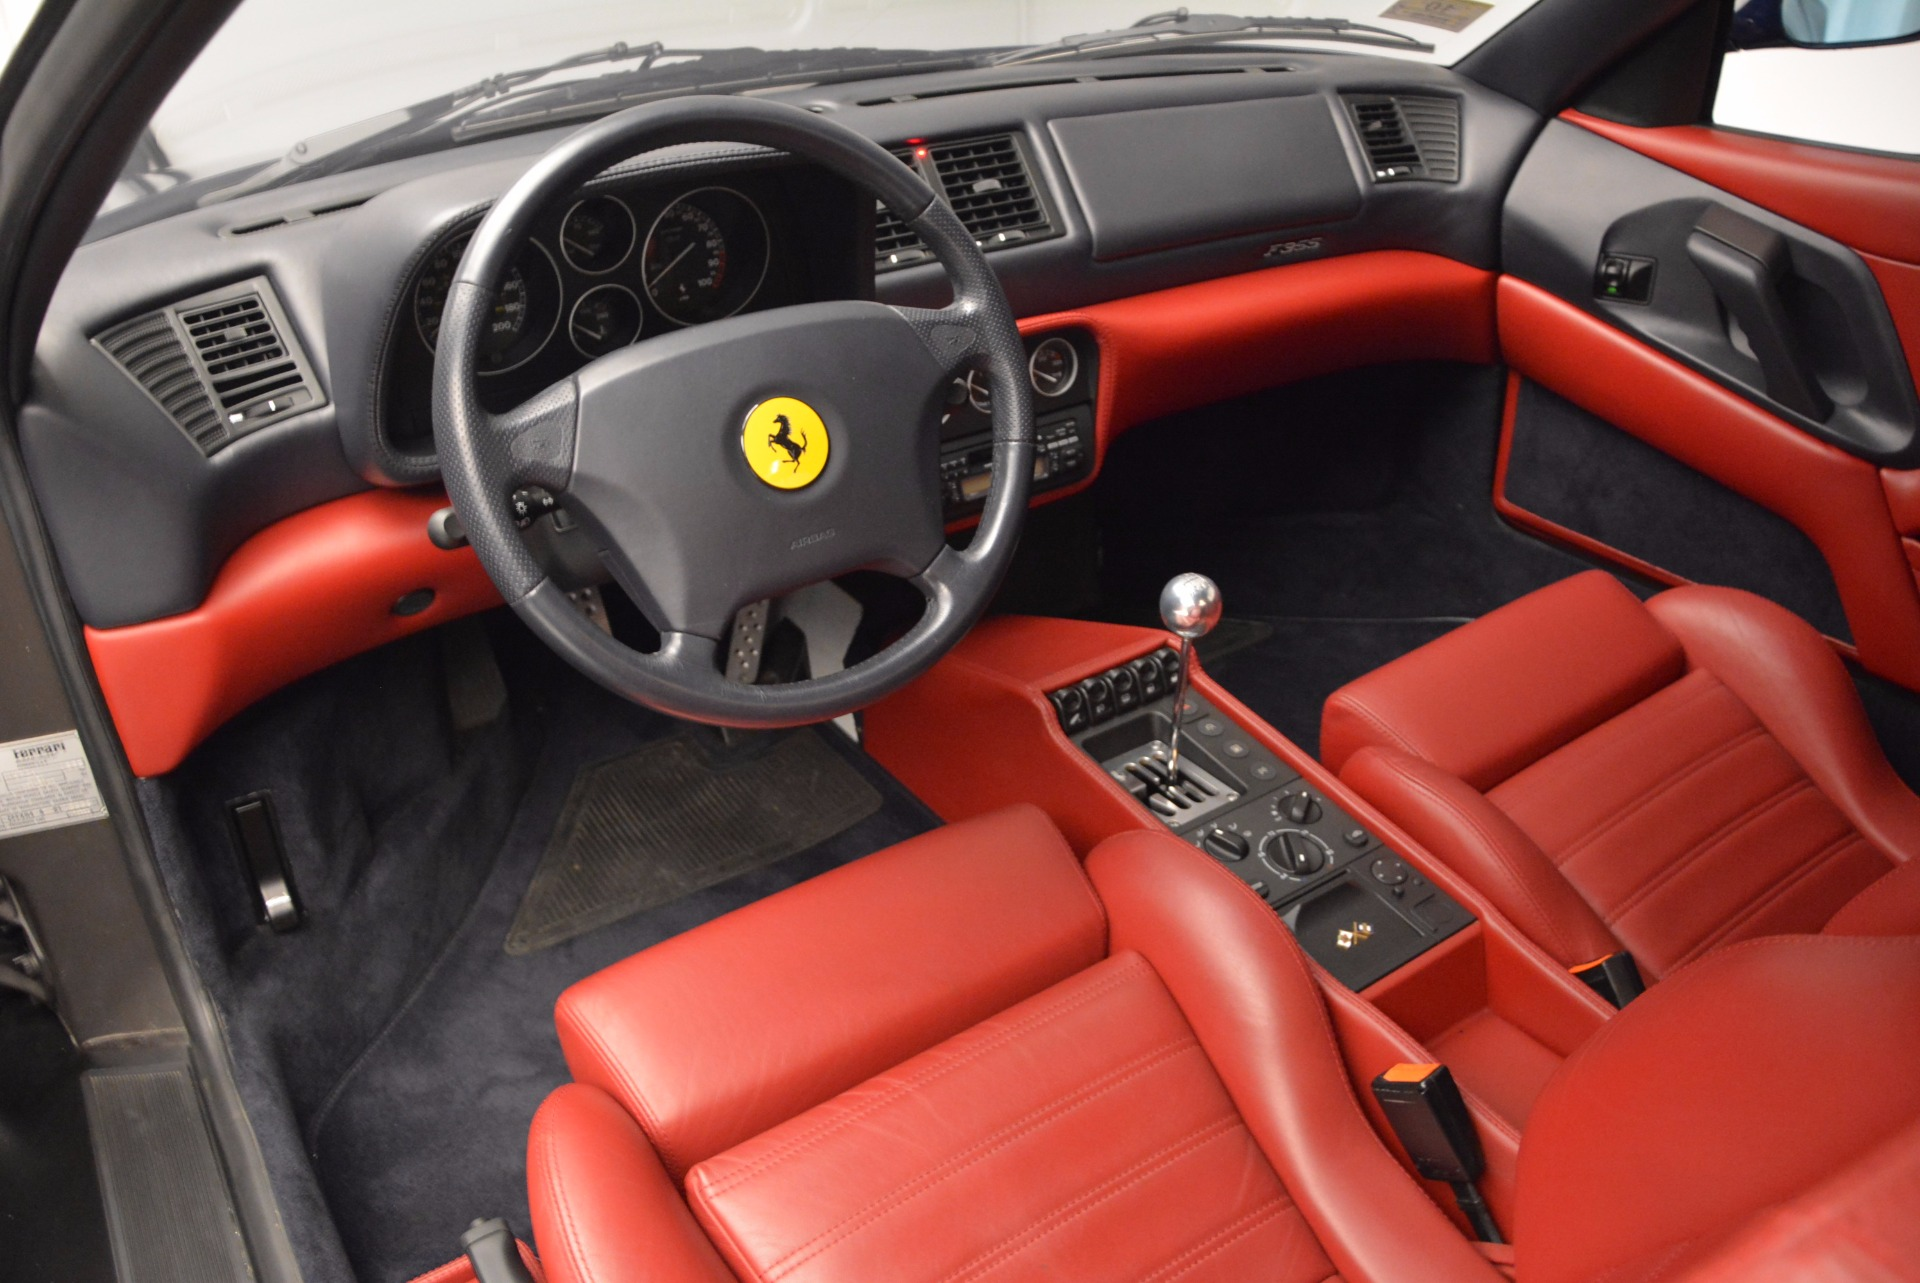 Used 1999 Ferrari 355 Berlinetta For Sale In Greenwich, CT 855_p14